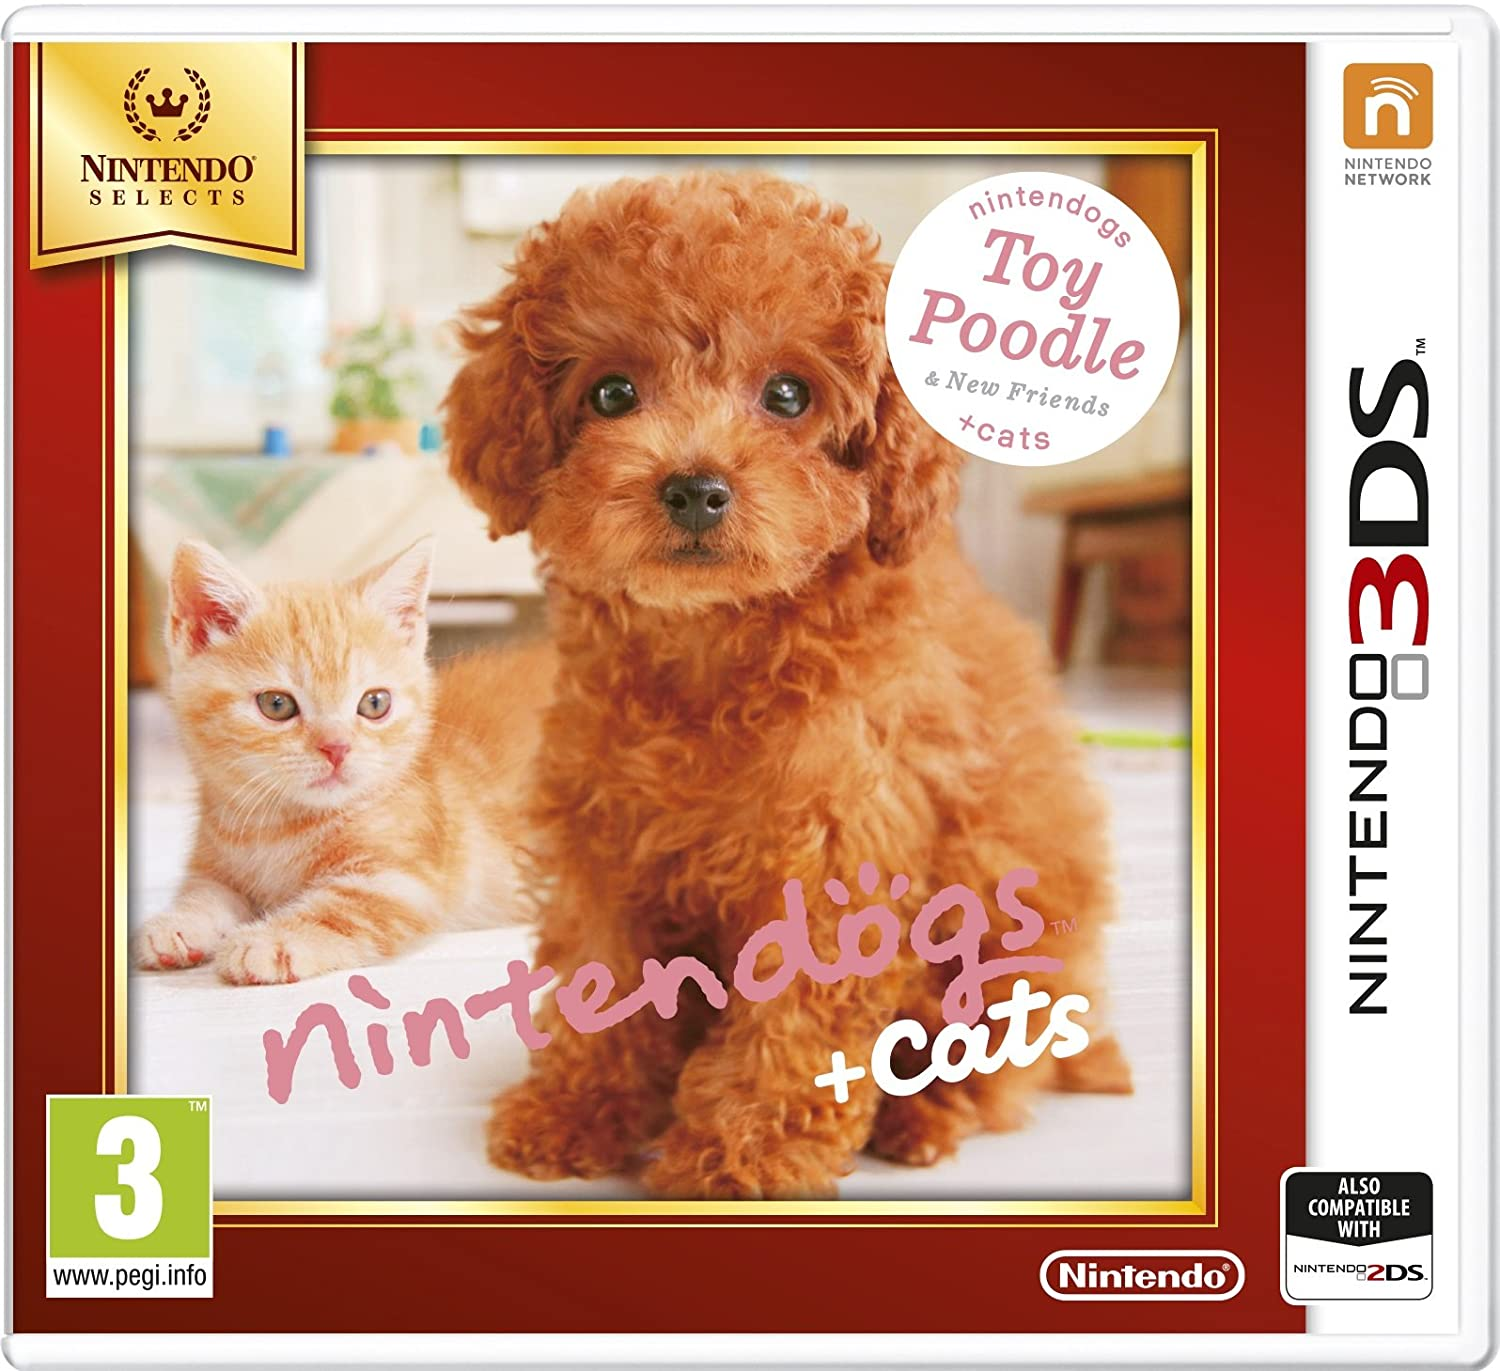 Nintendo Selects - Nintendogs + 5 ☆ very popular Cats 25% OFF Toy Poodle New Friends